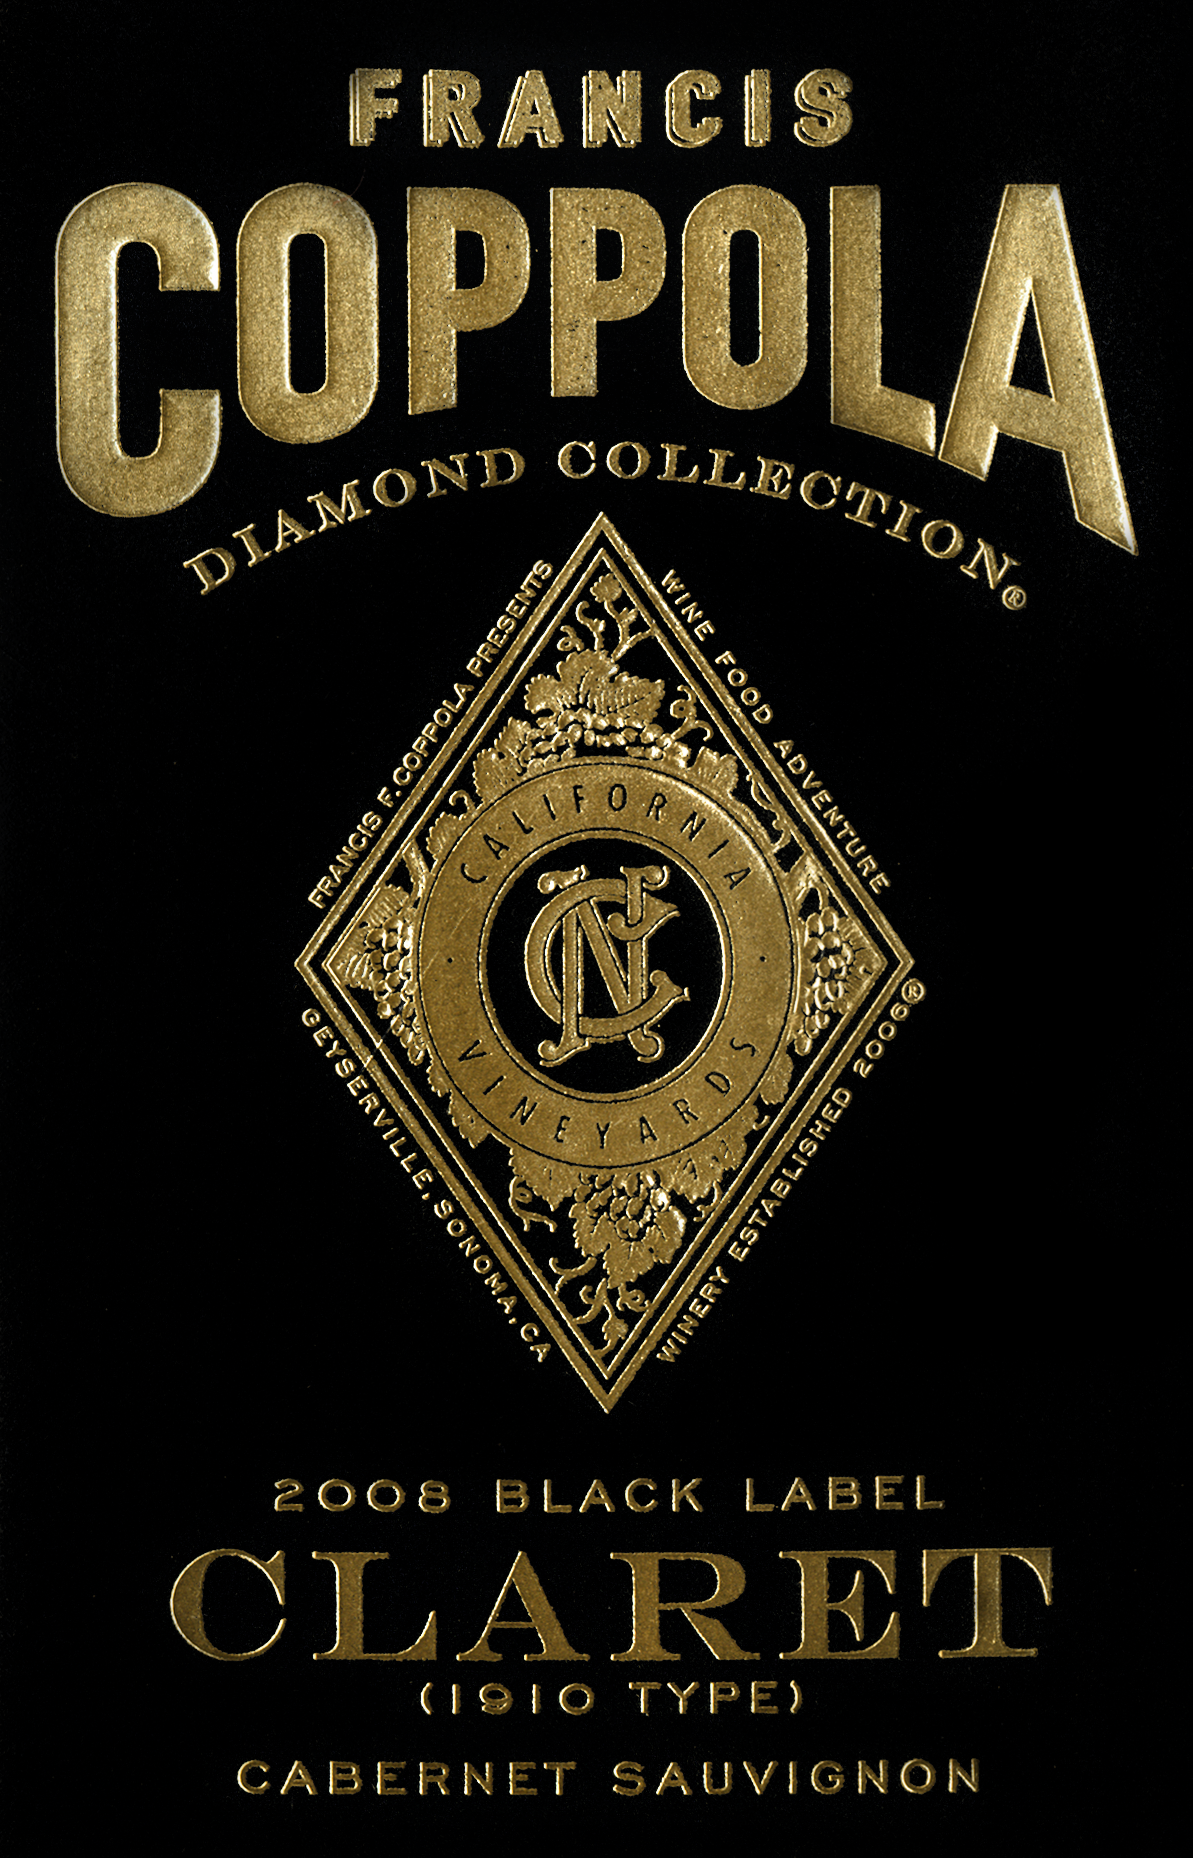 It is an image of Delicate Coppola Claret 2009 Black Label